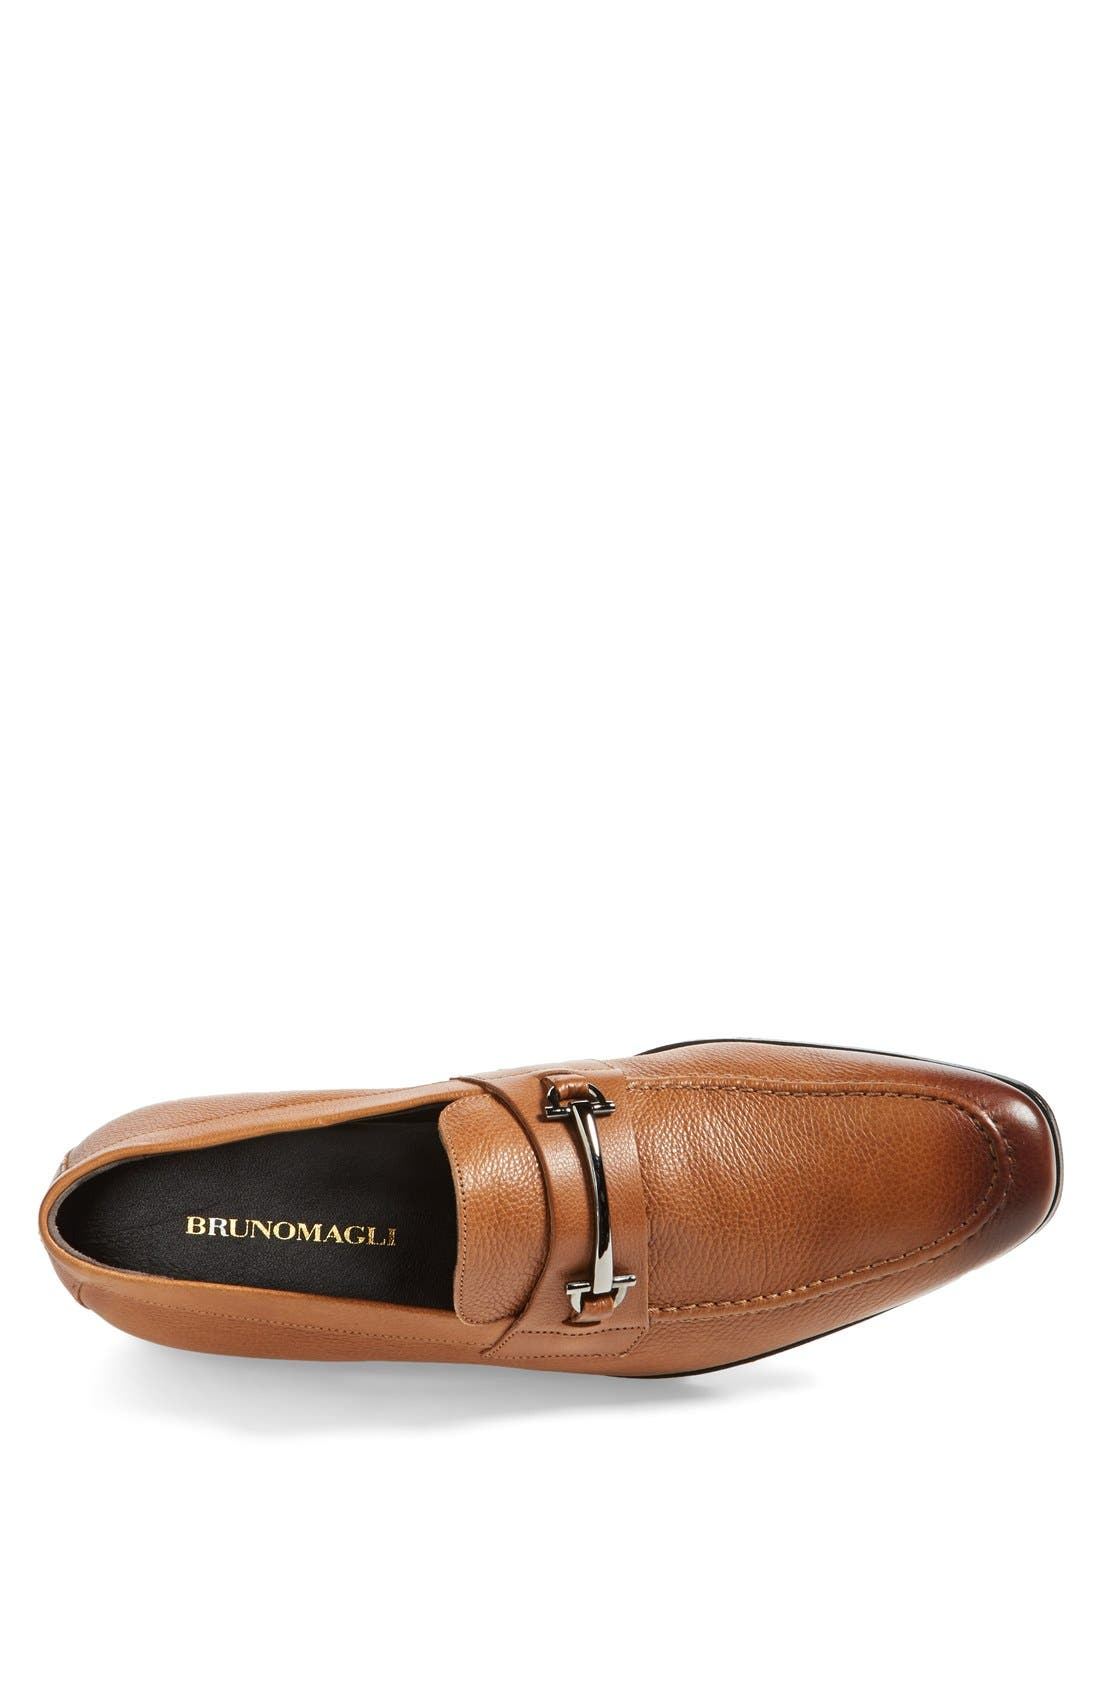 'Mamante II' Pebbled Leather Loafer,                             Alternate thumbnail 3, color,                             Light Brown